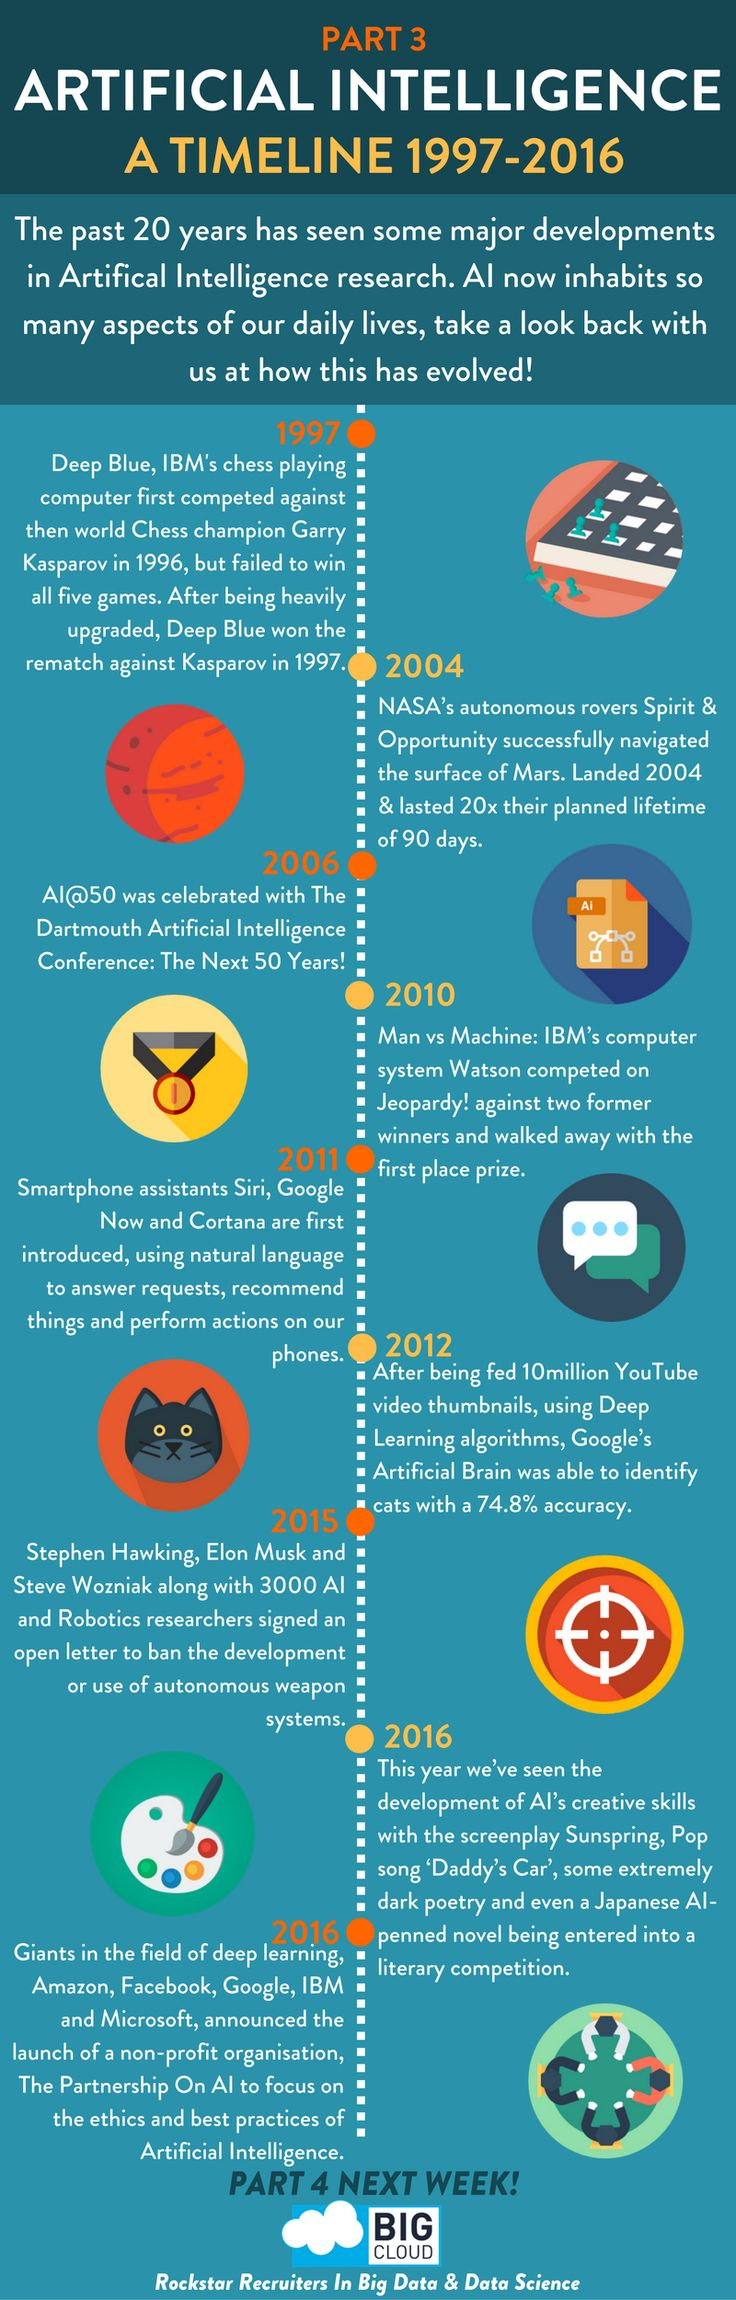 Artificial Intelligence Timeline. A history of artificial intelligence part 3 - Modern Contemporary Recent Artificial Intelligence 1997 - 2016